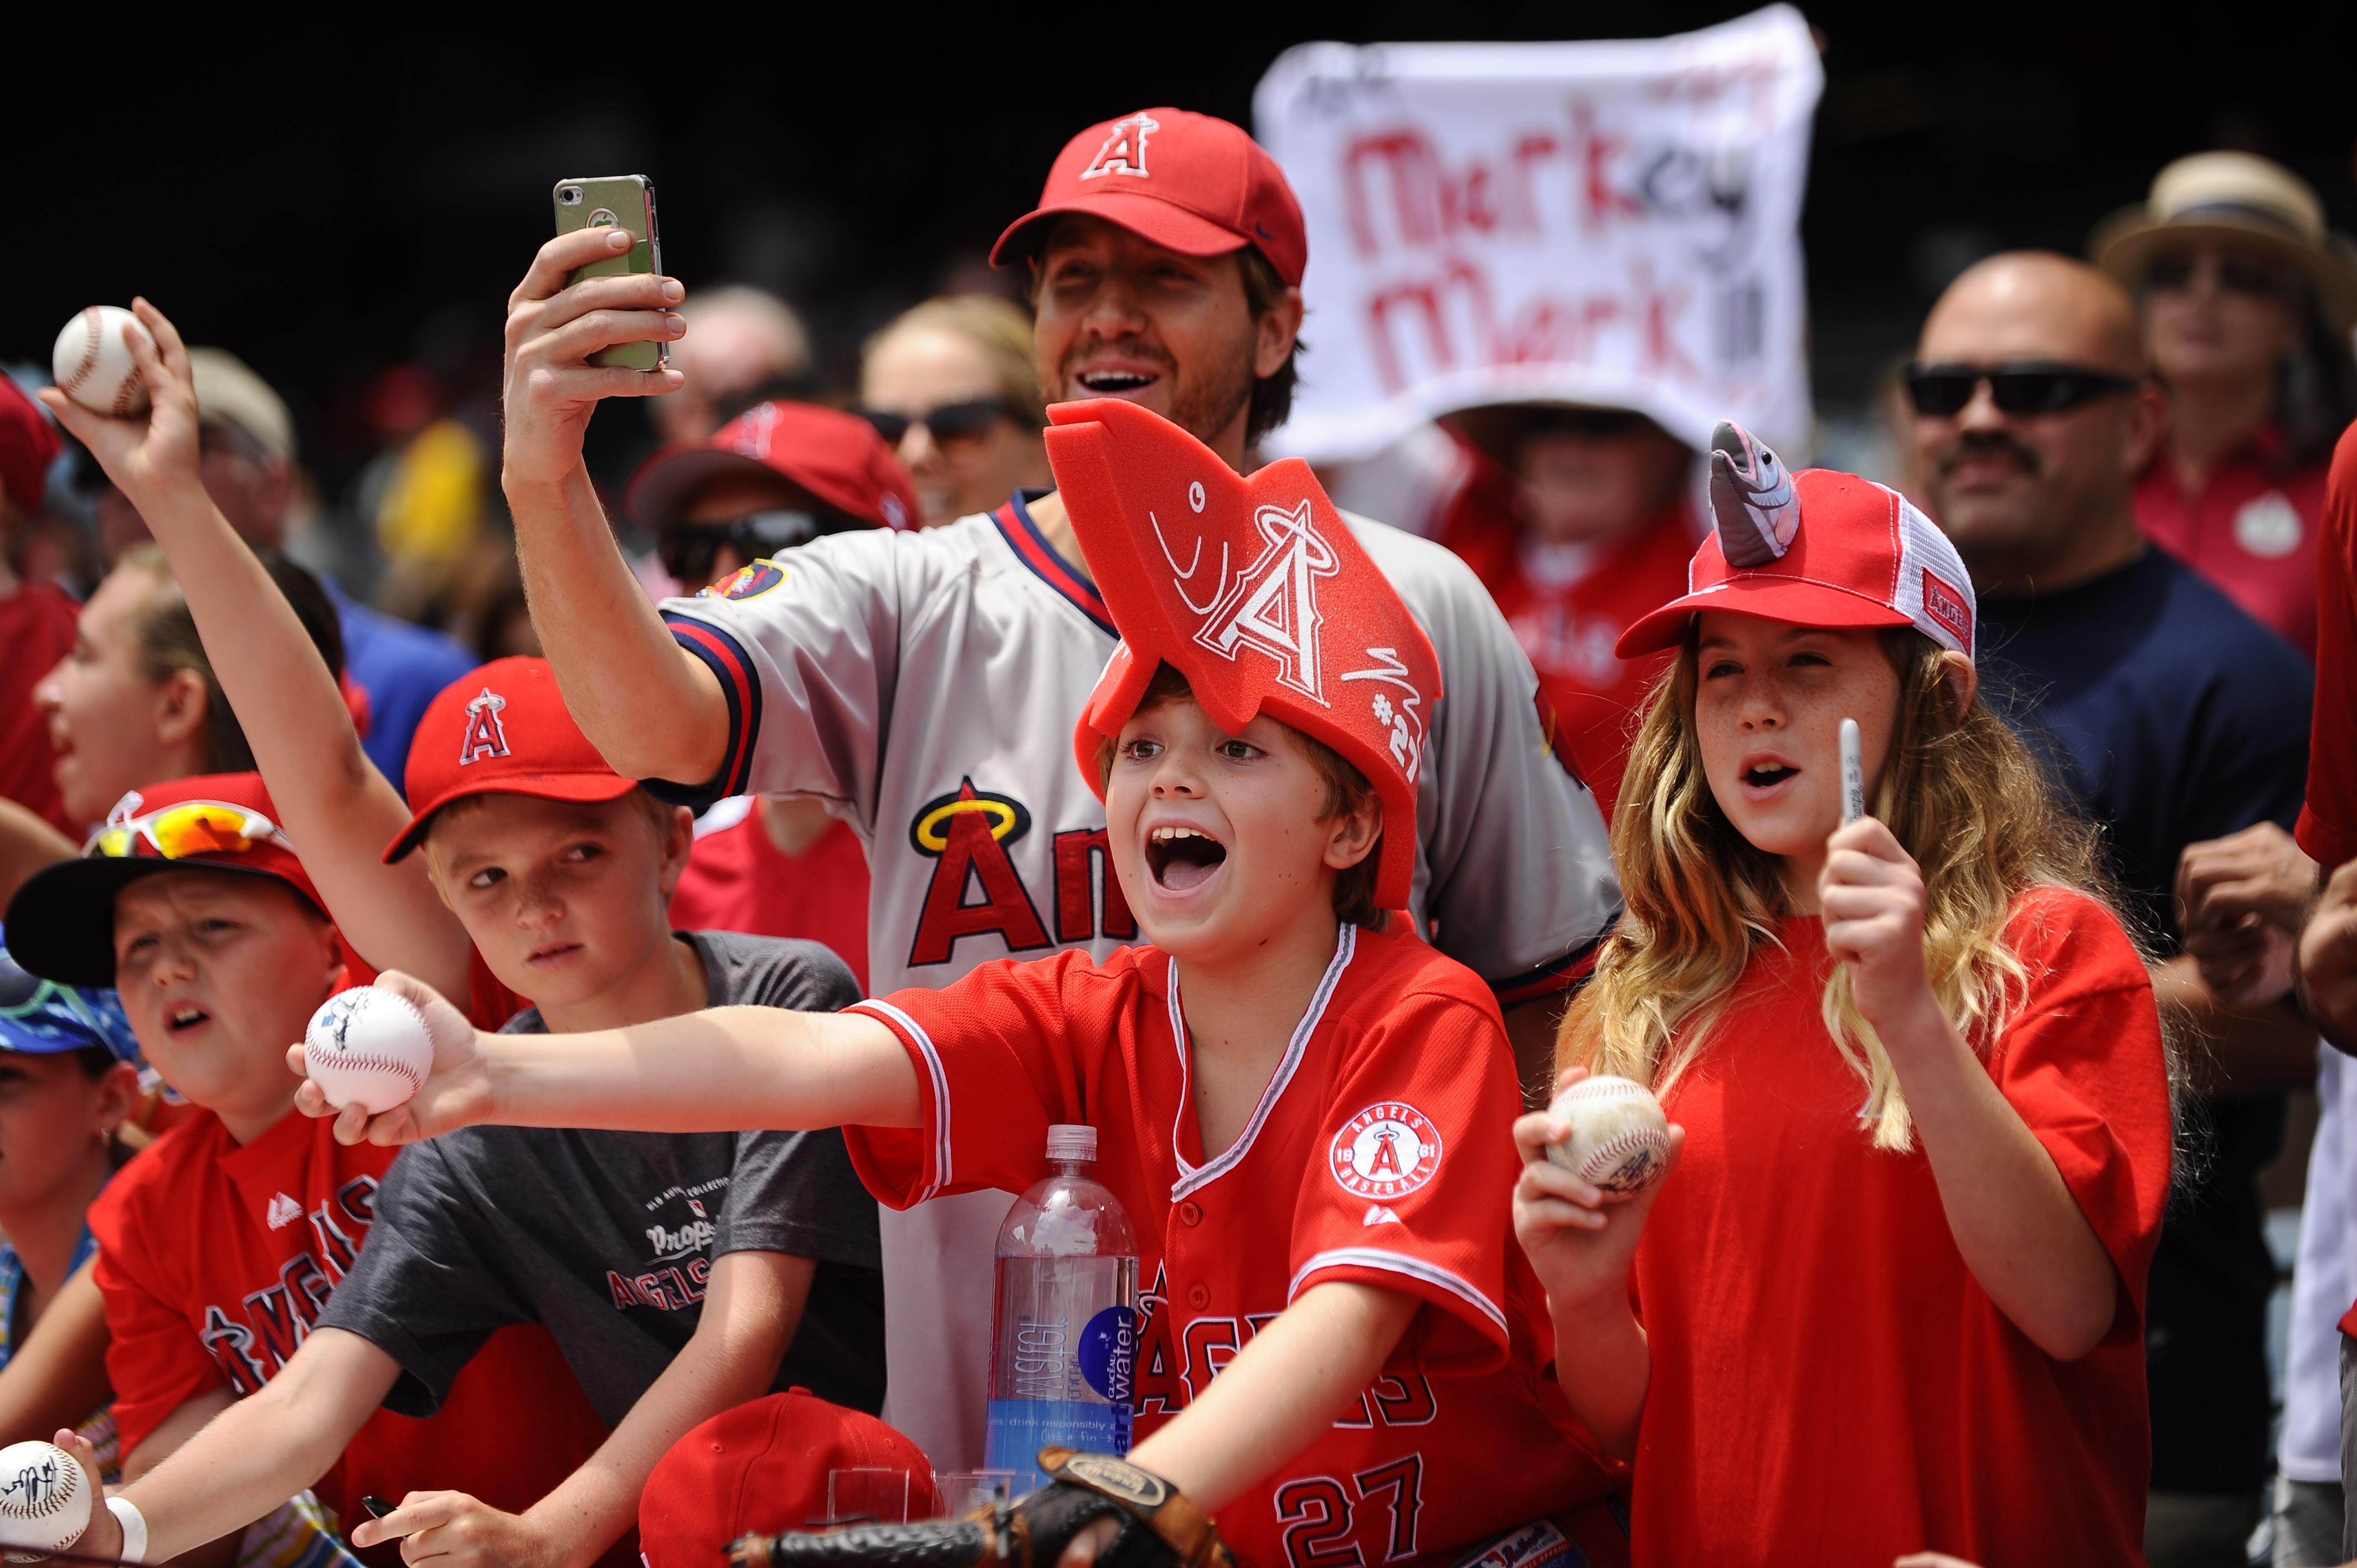 Young fans get into the action at Angel Stadium. (Photo courtesy of Angels Baseball)